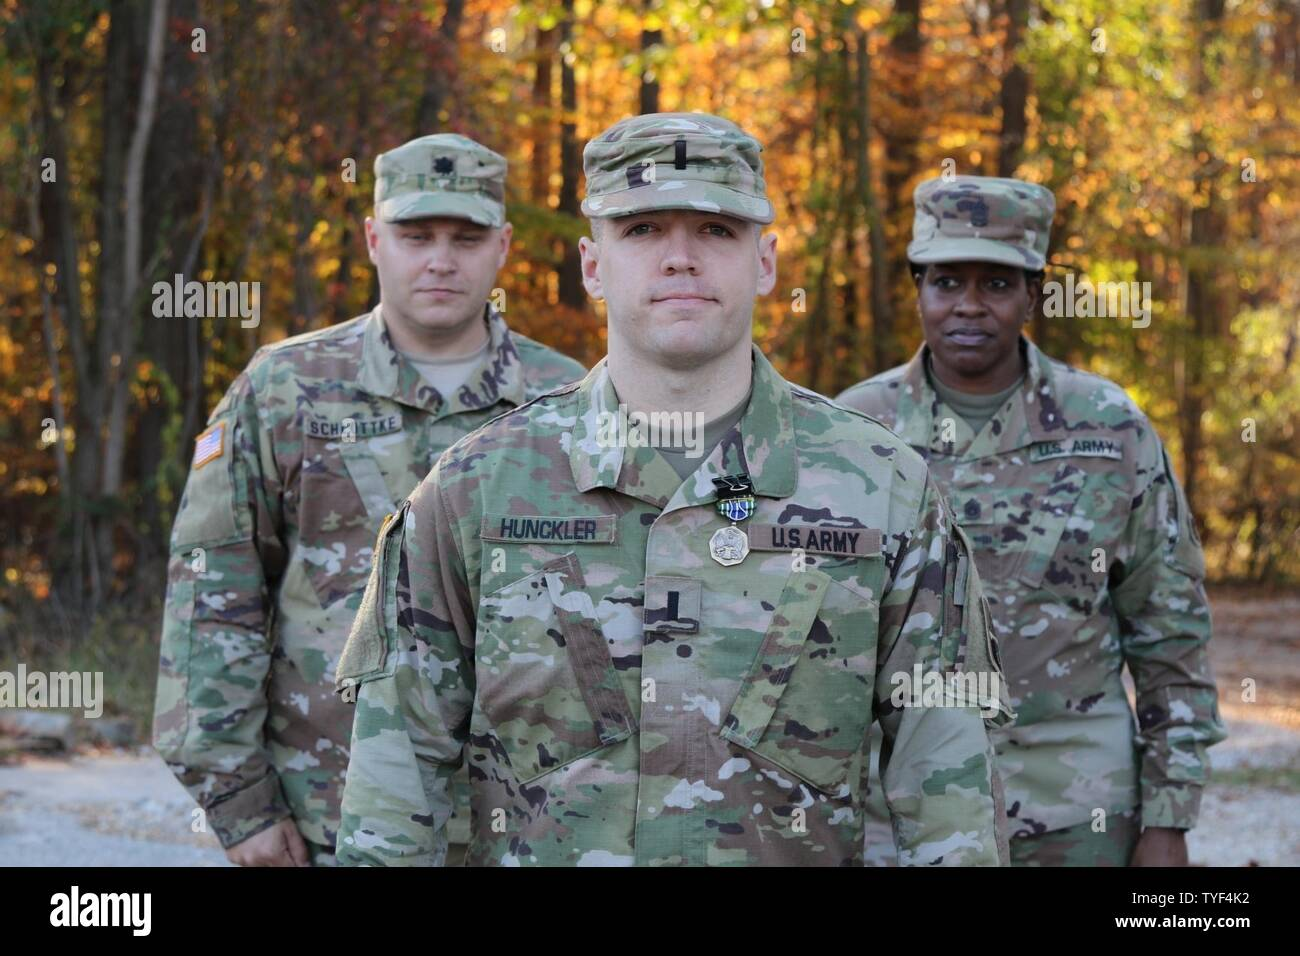 Soldier from the 58th Expeditionary Military Intelligence Brigade (EMIB) competed in the Soldier and Noncommissioned Officer and Company Grade Officer of the Year Competition, Nov. 5 at Gunpowder Military Reservation, Md. The day-long competition tested Soldiers on numerous warrior tasks and finalized with a seven mile ruck march and live-fire stress shoot. Stock Photo